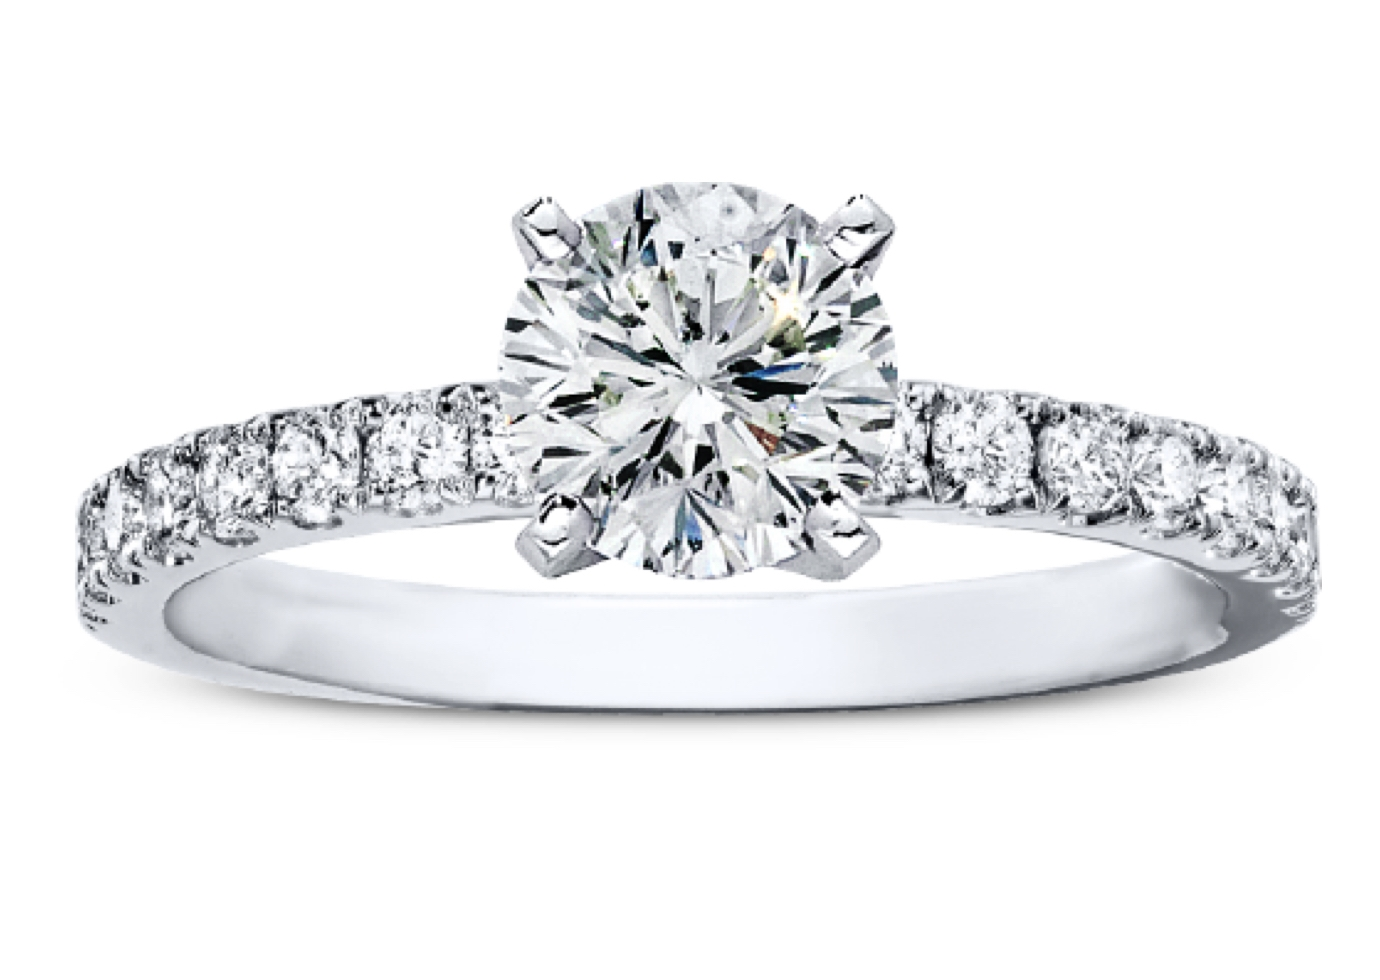 Shop all engagement ring styles at Jared